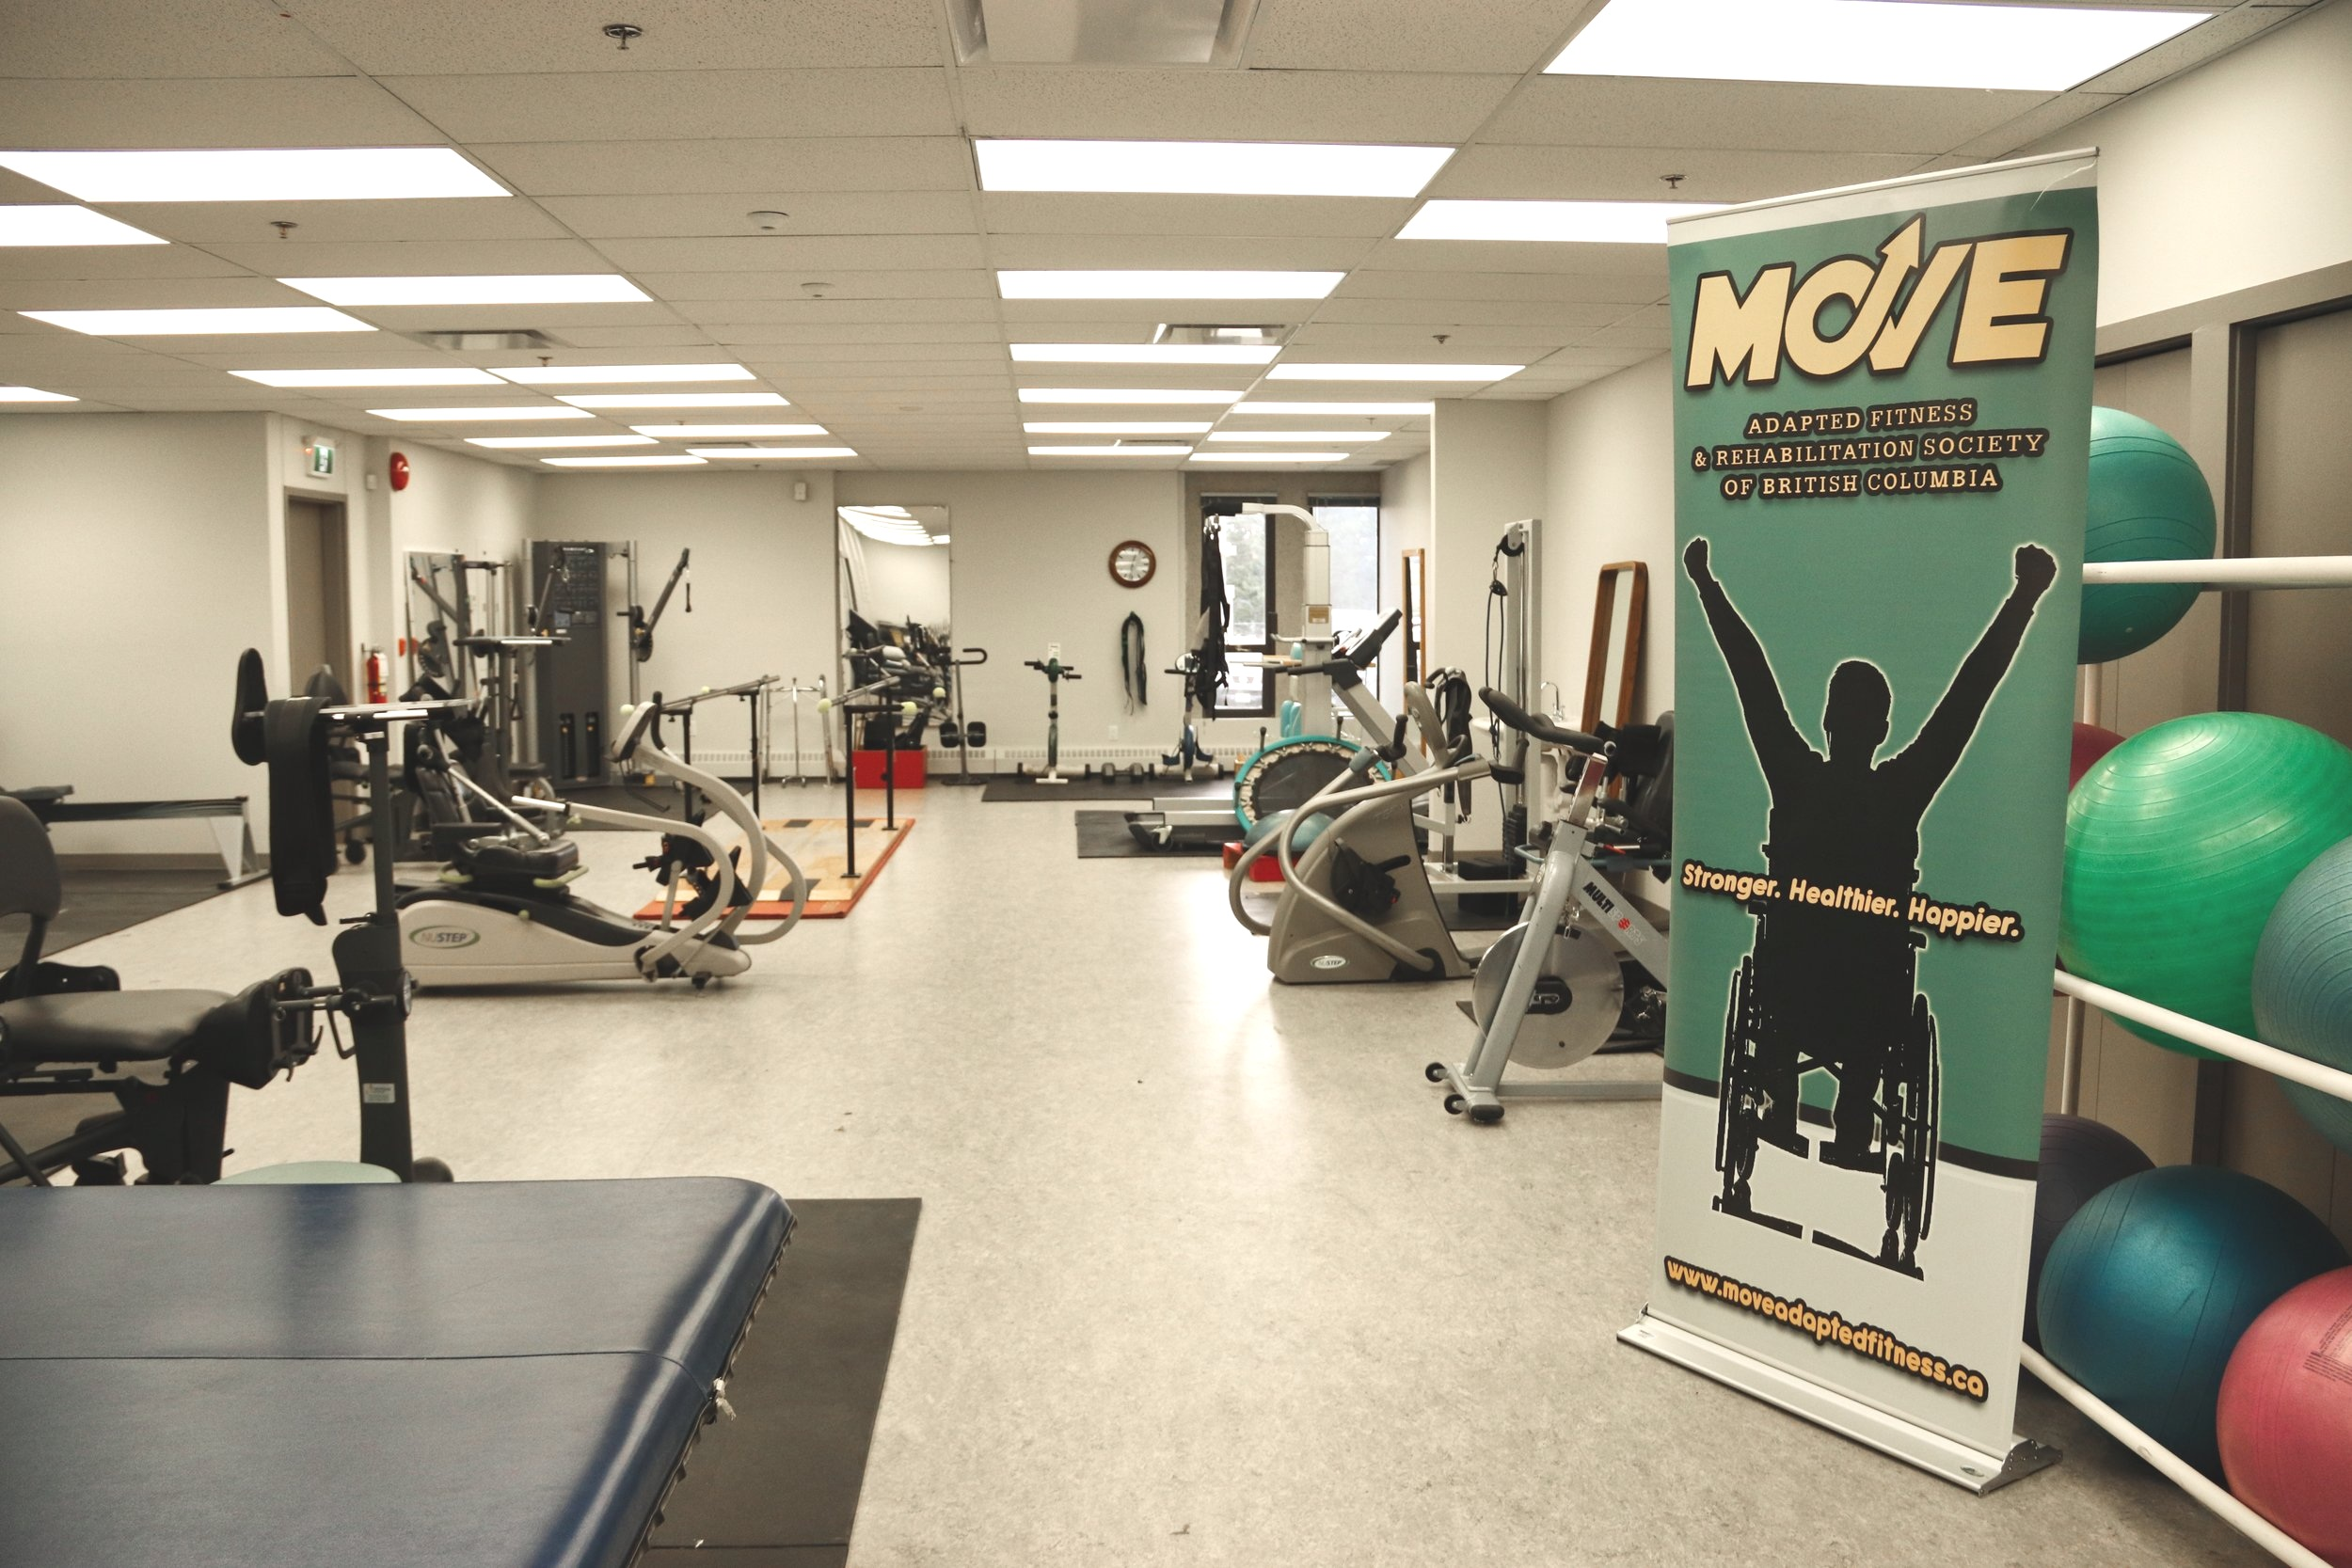 MOVE's new space within the Neuromotion Centre for Rehabilitation